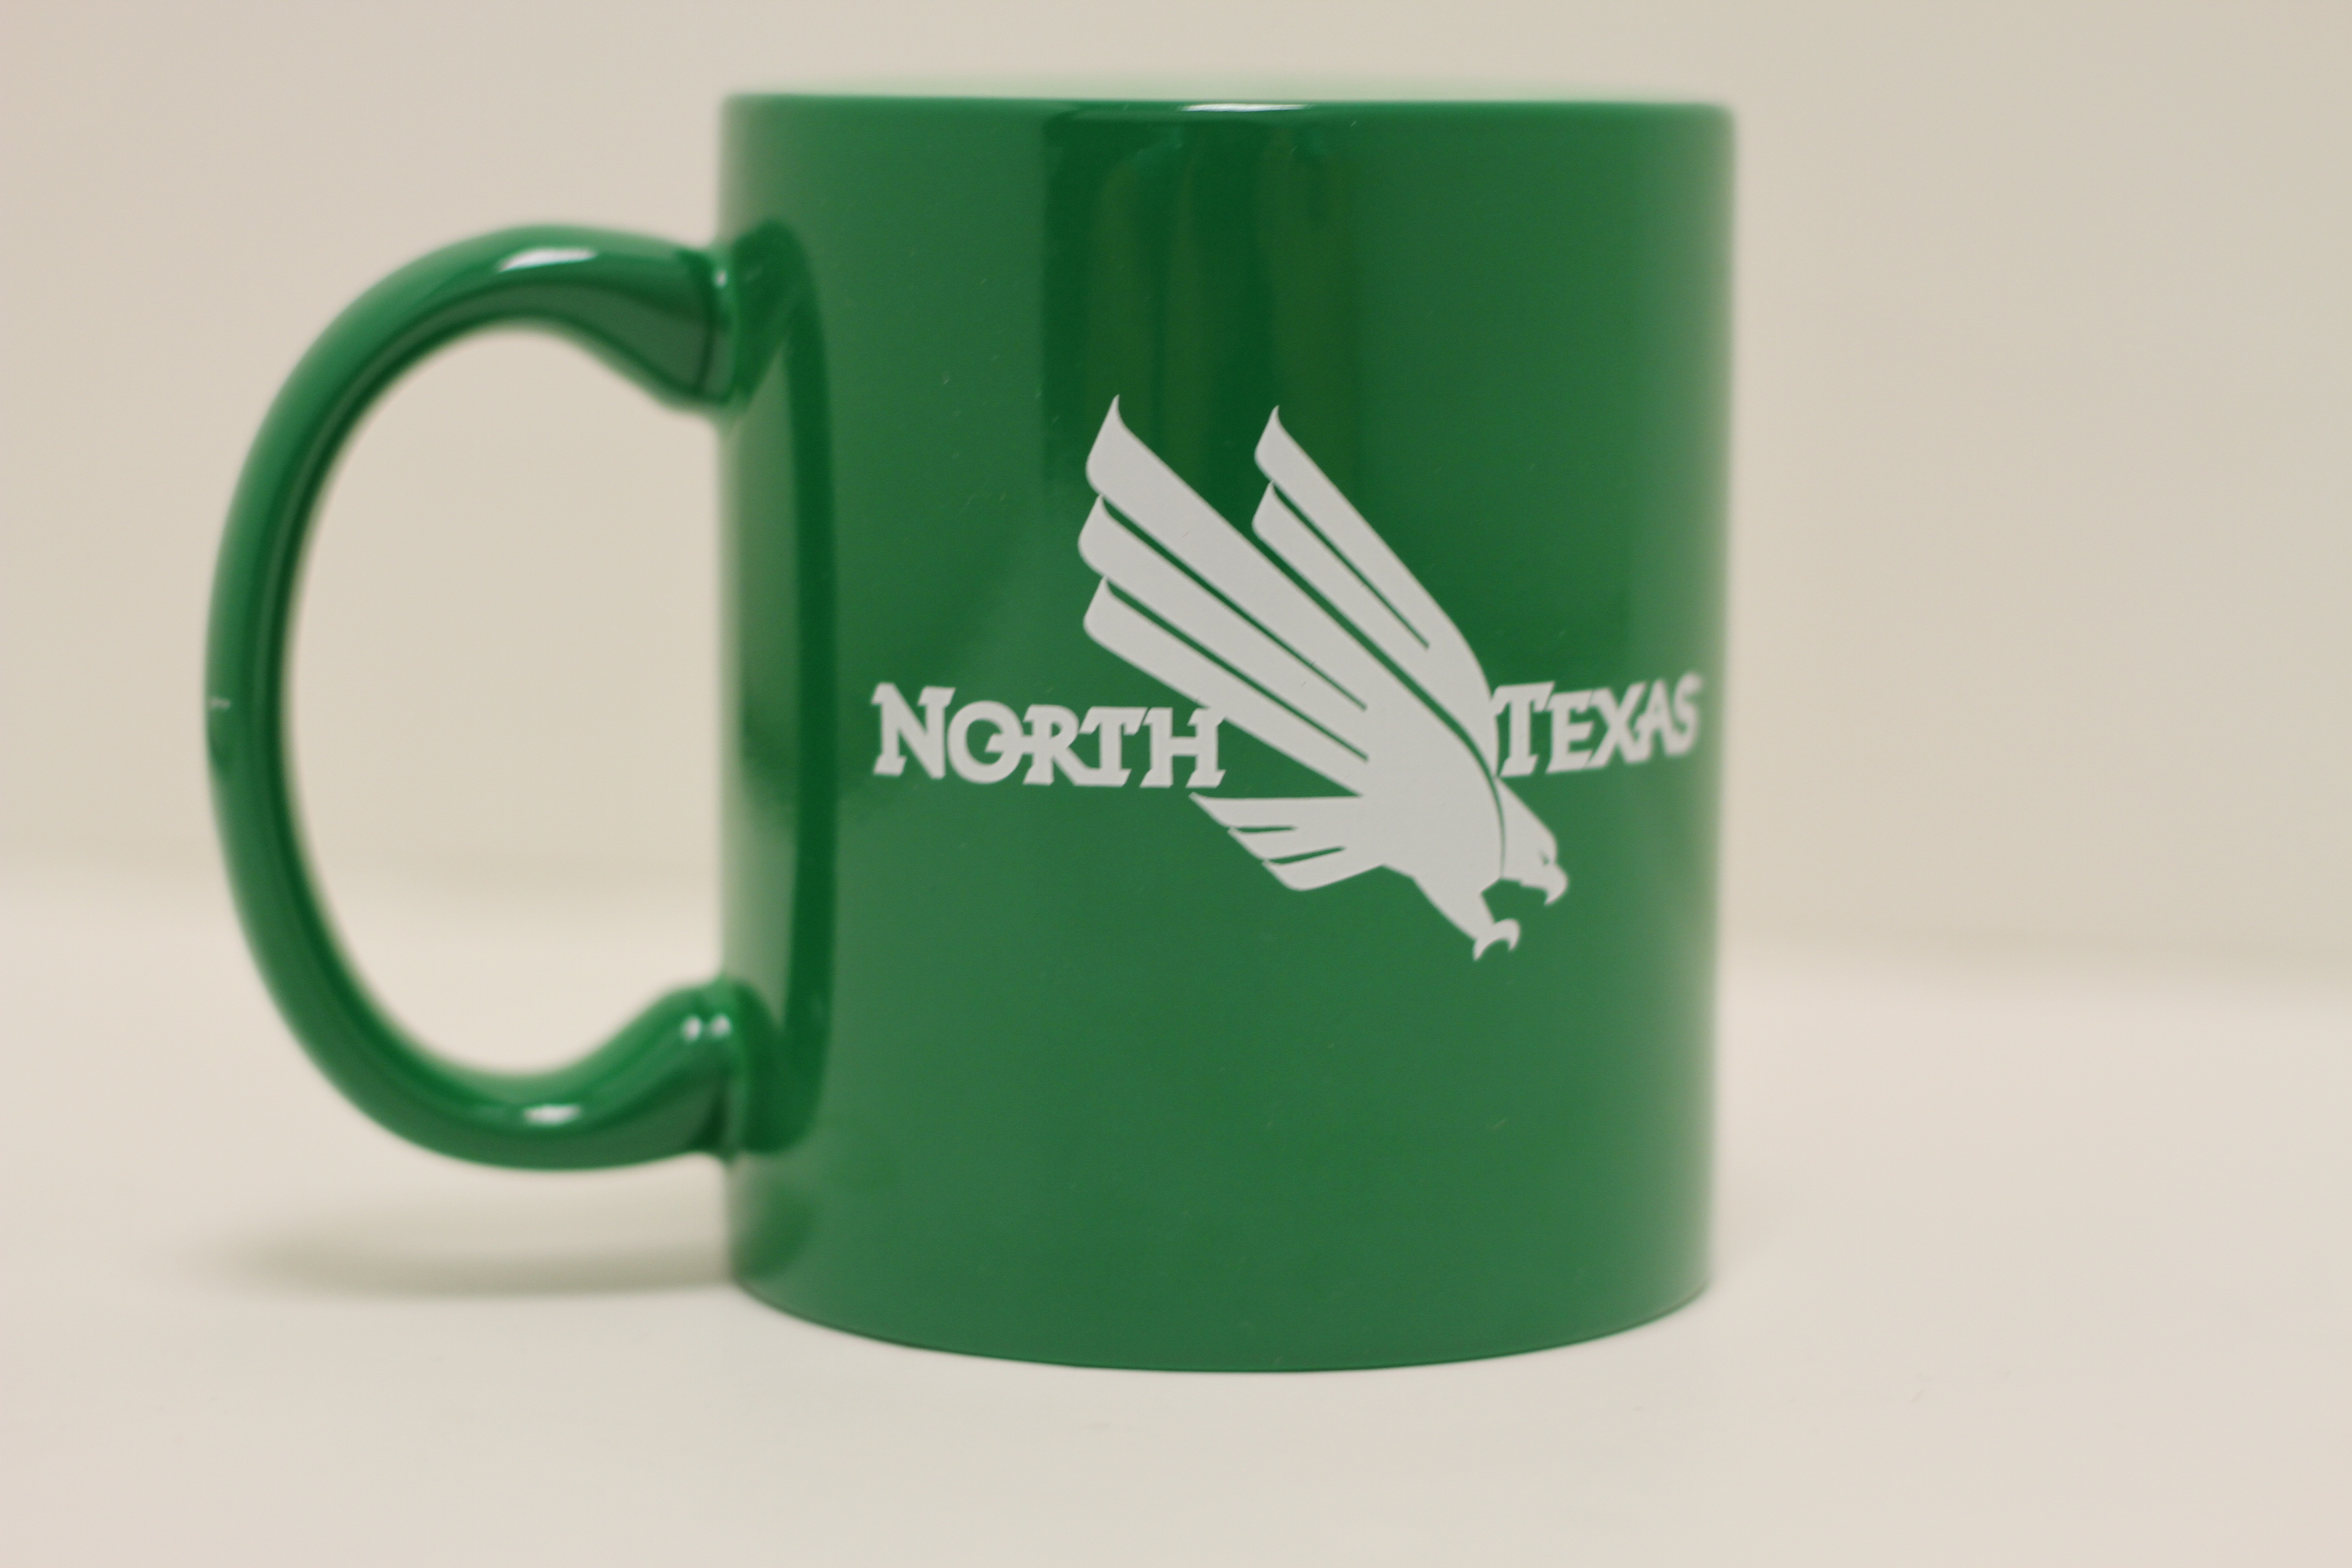 11 OZ. NORTH TEXAS MUG